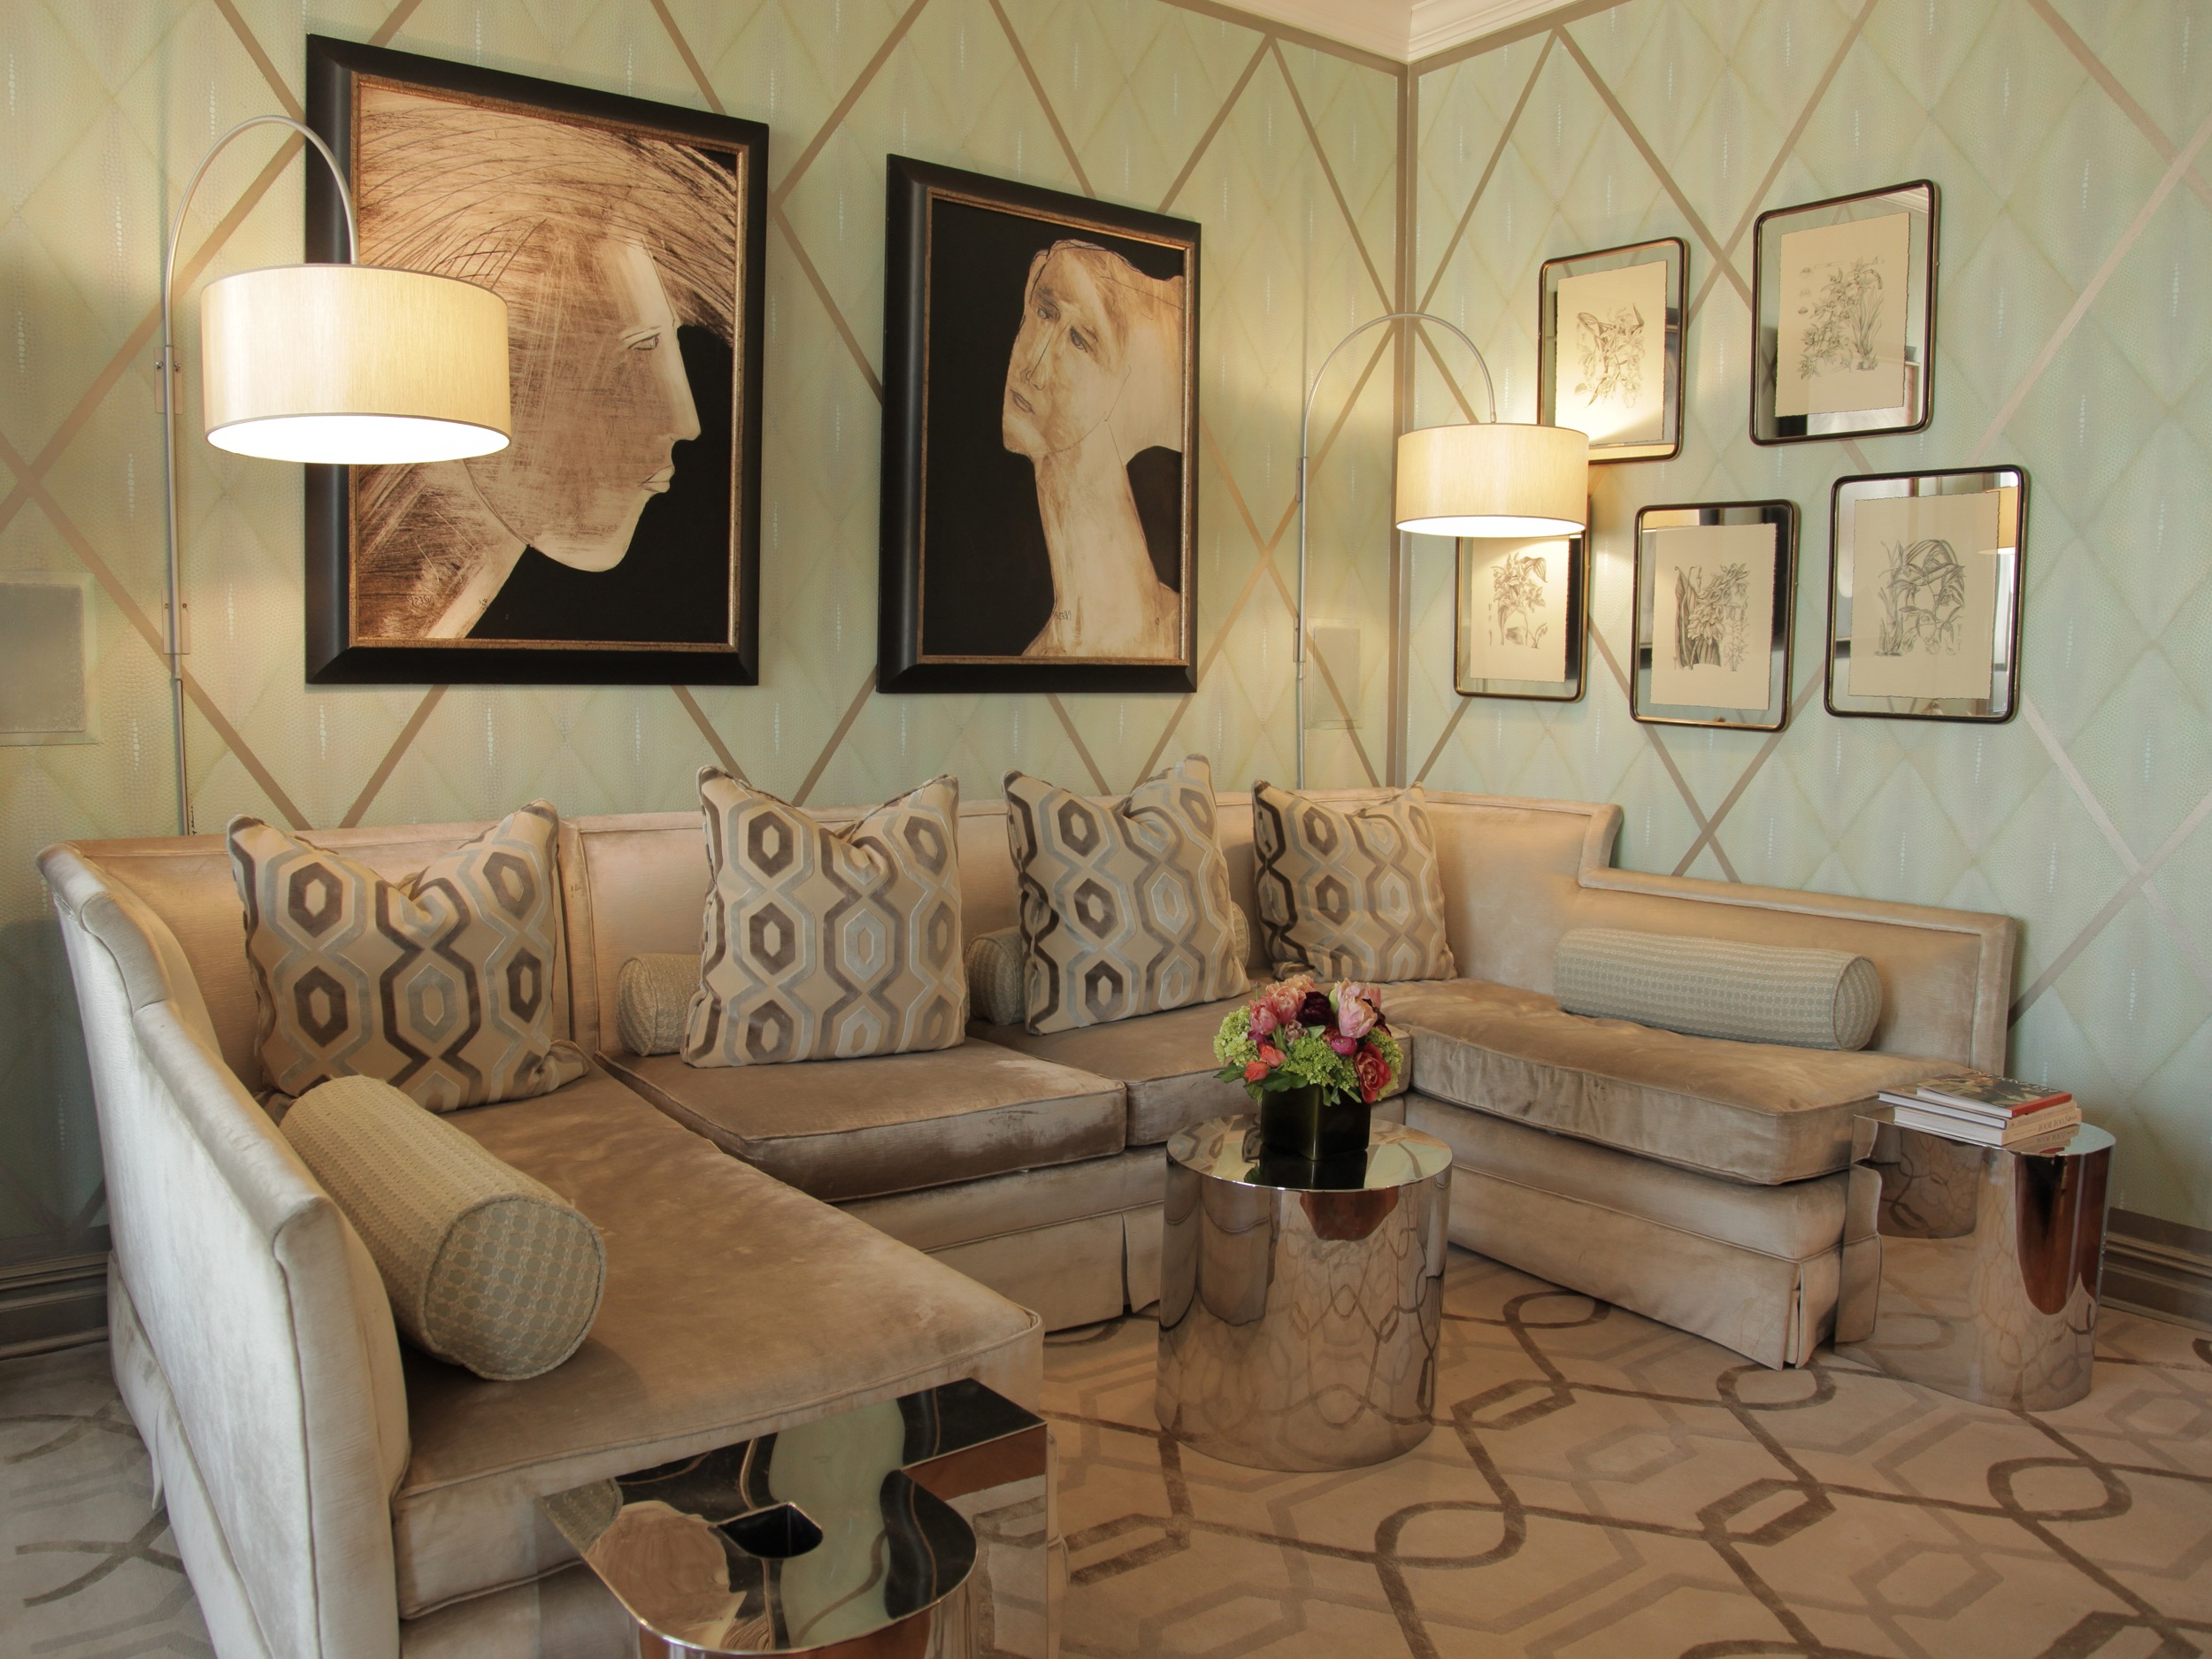 Art Deco Living Room With Patterned Wall (Image 3 of 20)